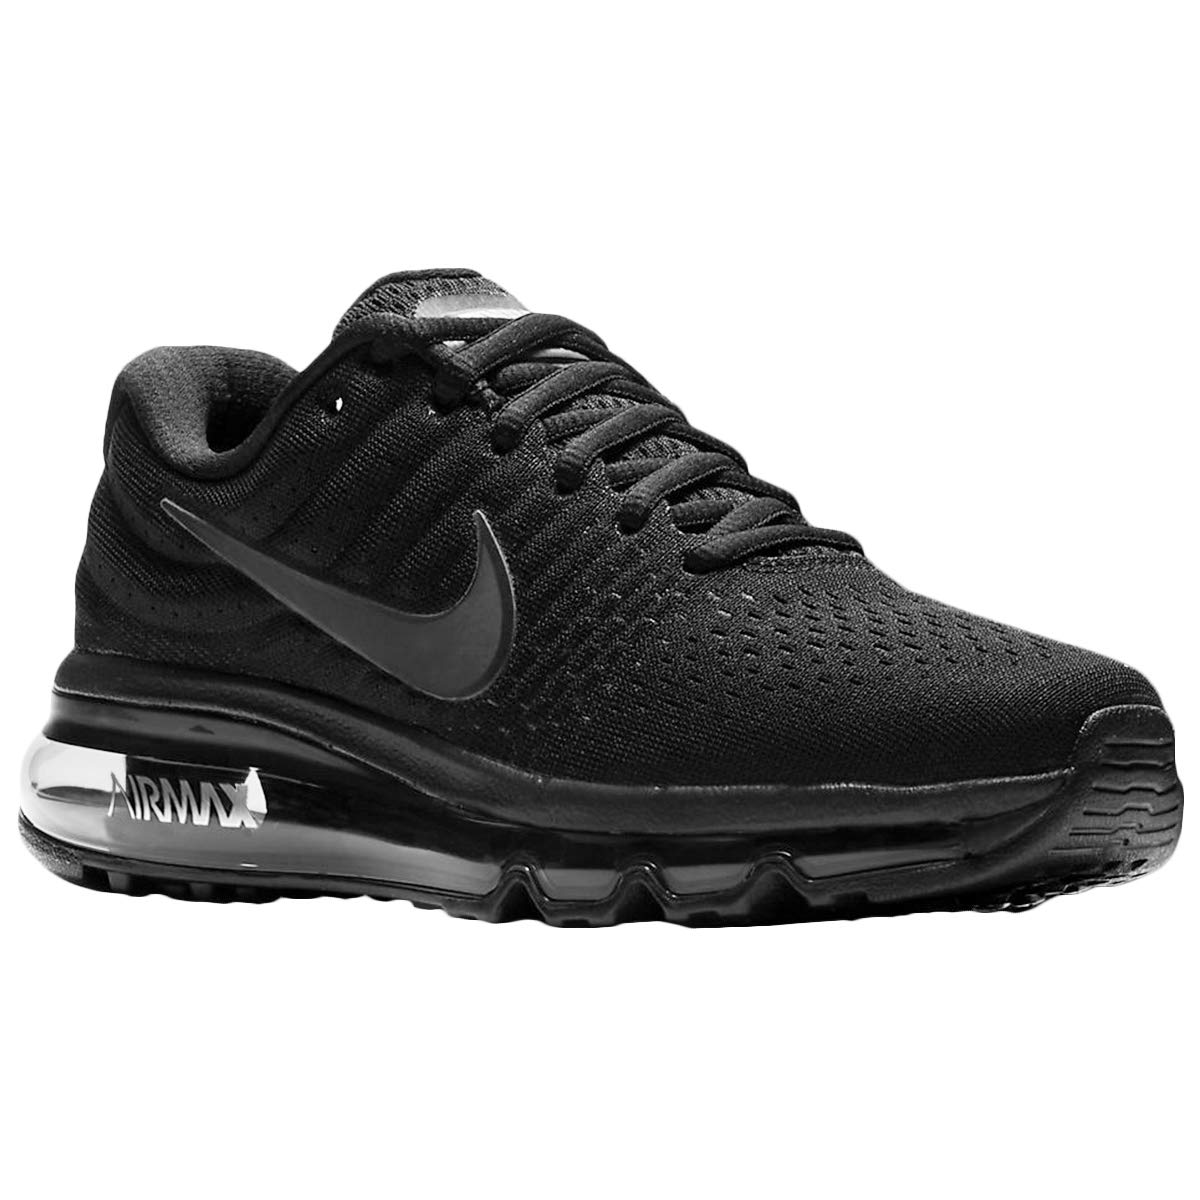 finest selection 79301 54f86 Nike Air Max 2017 GS Running Trainers 851622 Sneakers Shoes (UK 4 US 4.5Y  EU 36.5, Black Black Black 004)